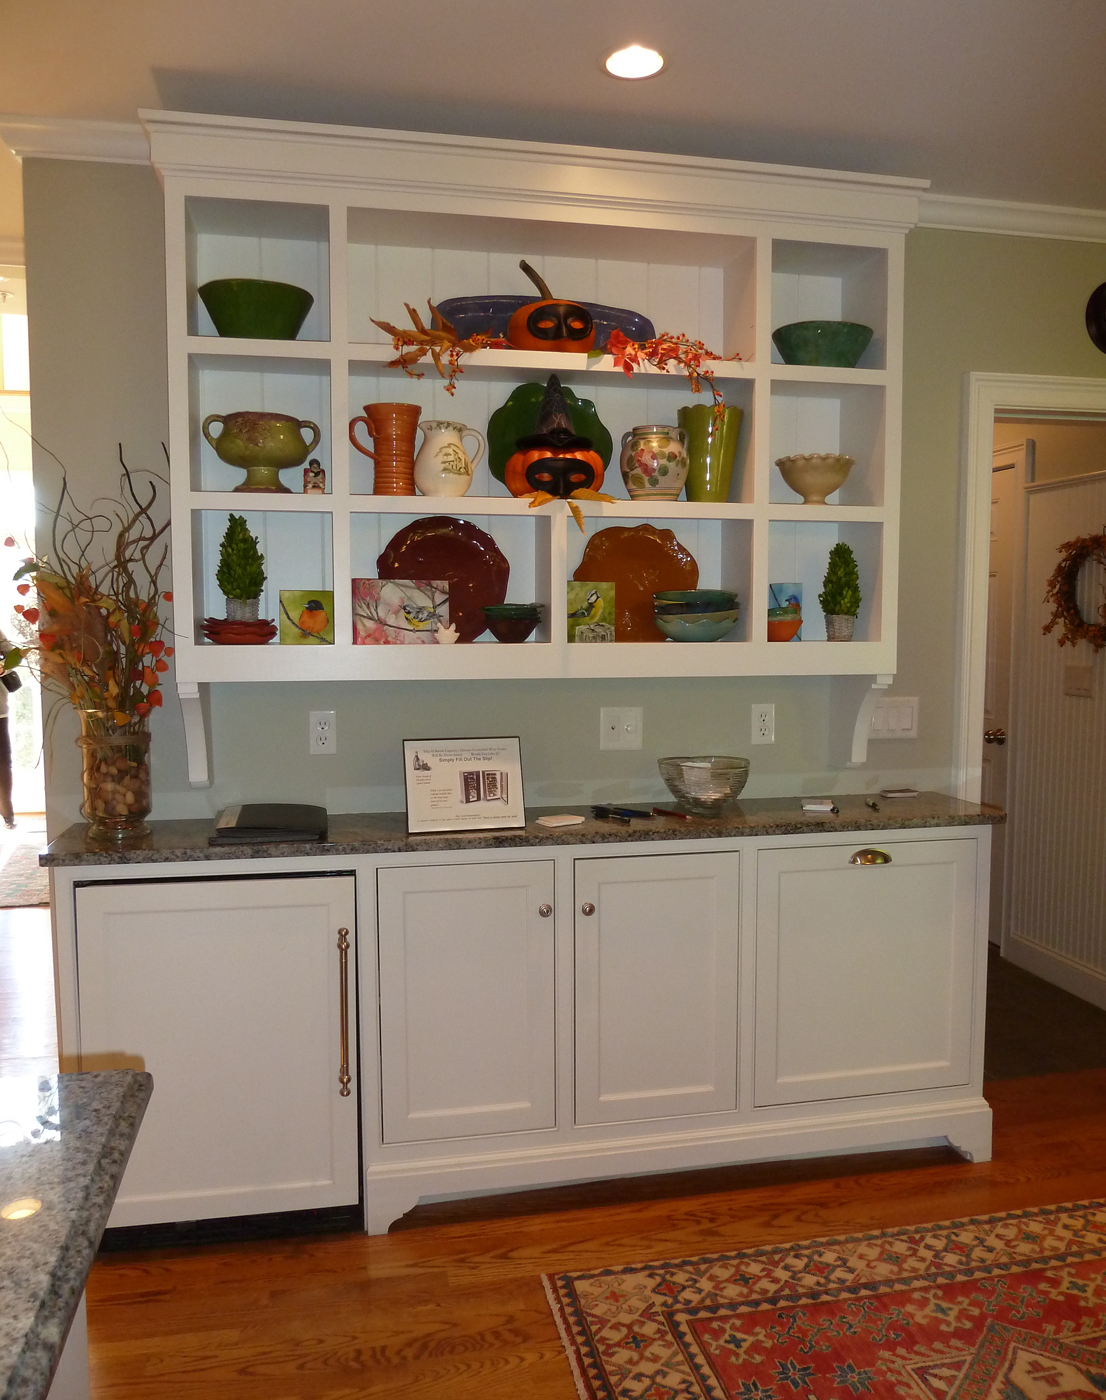 Design Vignettes Kitchen Tour Week Day Five